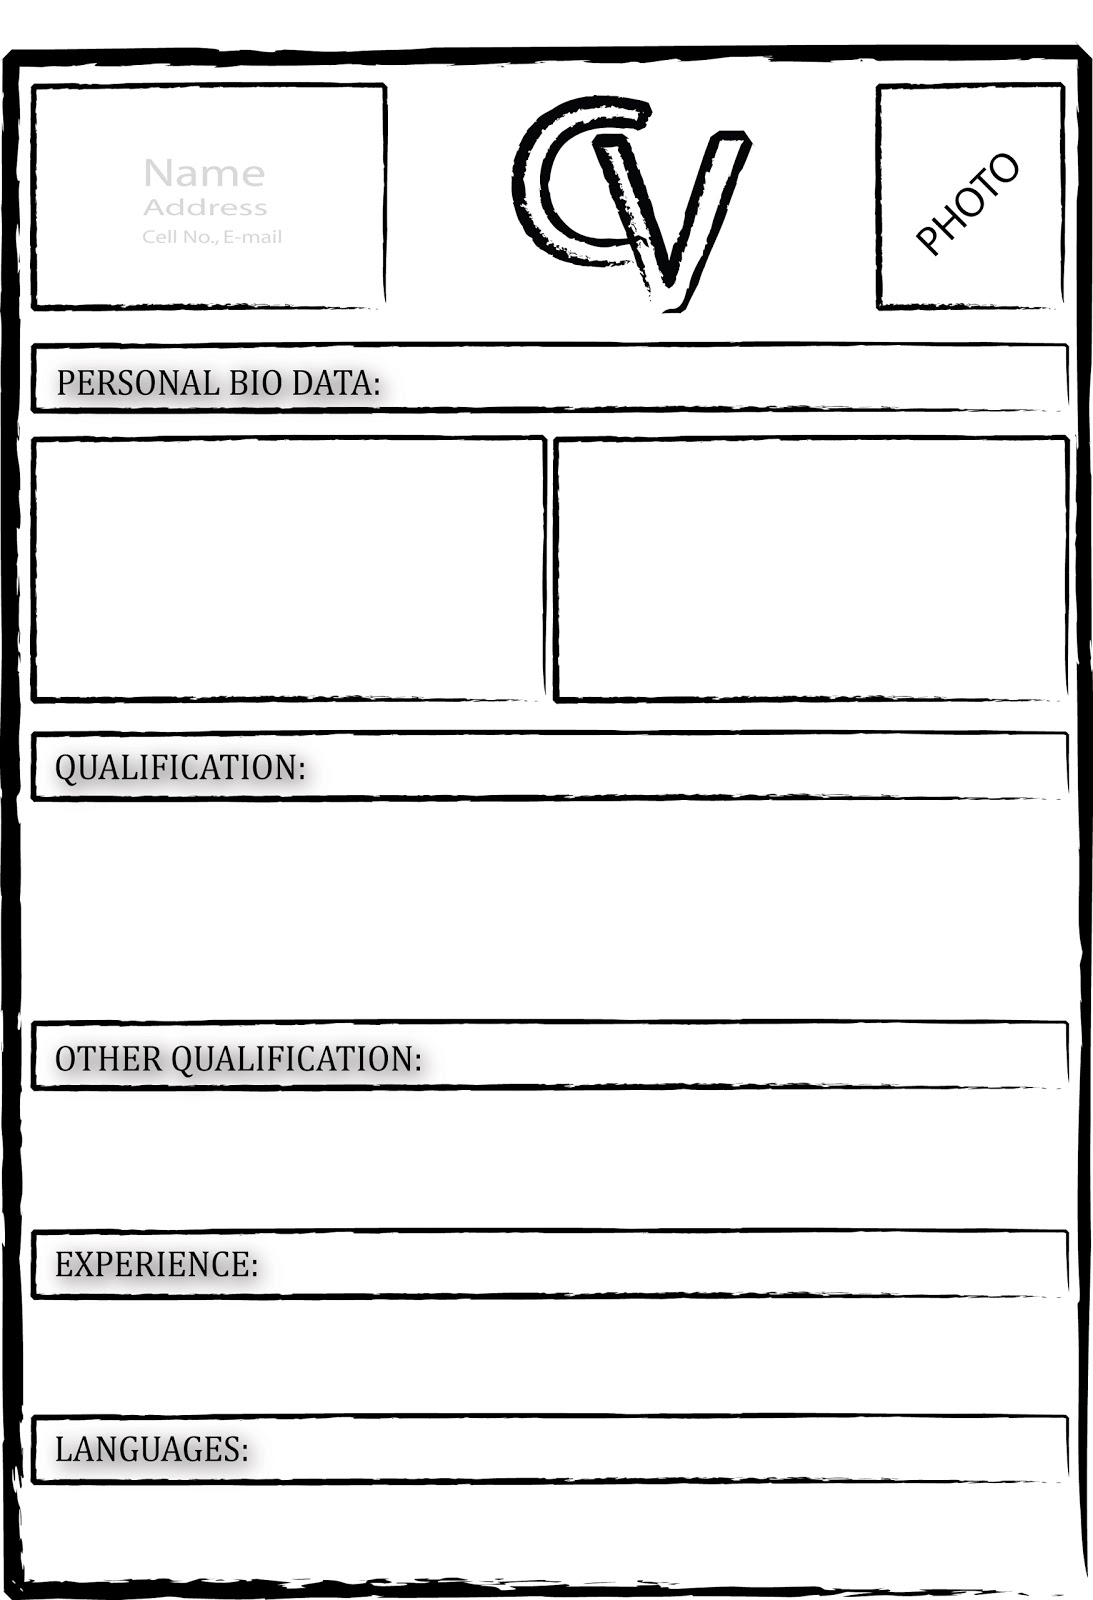 Empty Resume Format     marvelous job resume format examples of     Resume Template Info Simple Resume Blank Form Printable Basic Resume Template With Outline Blank  Form Blank Resume Templates